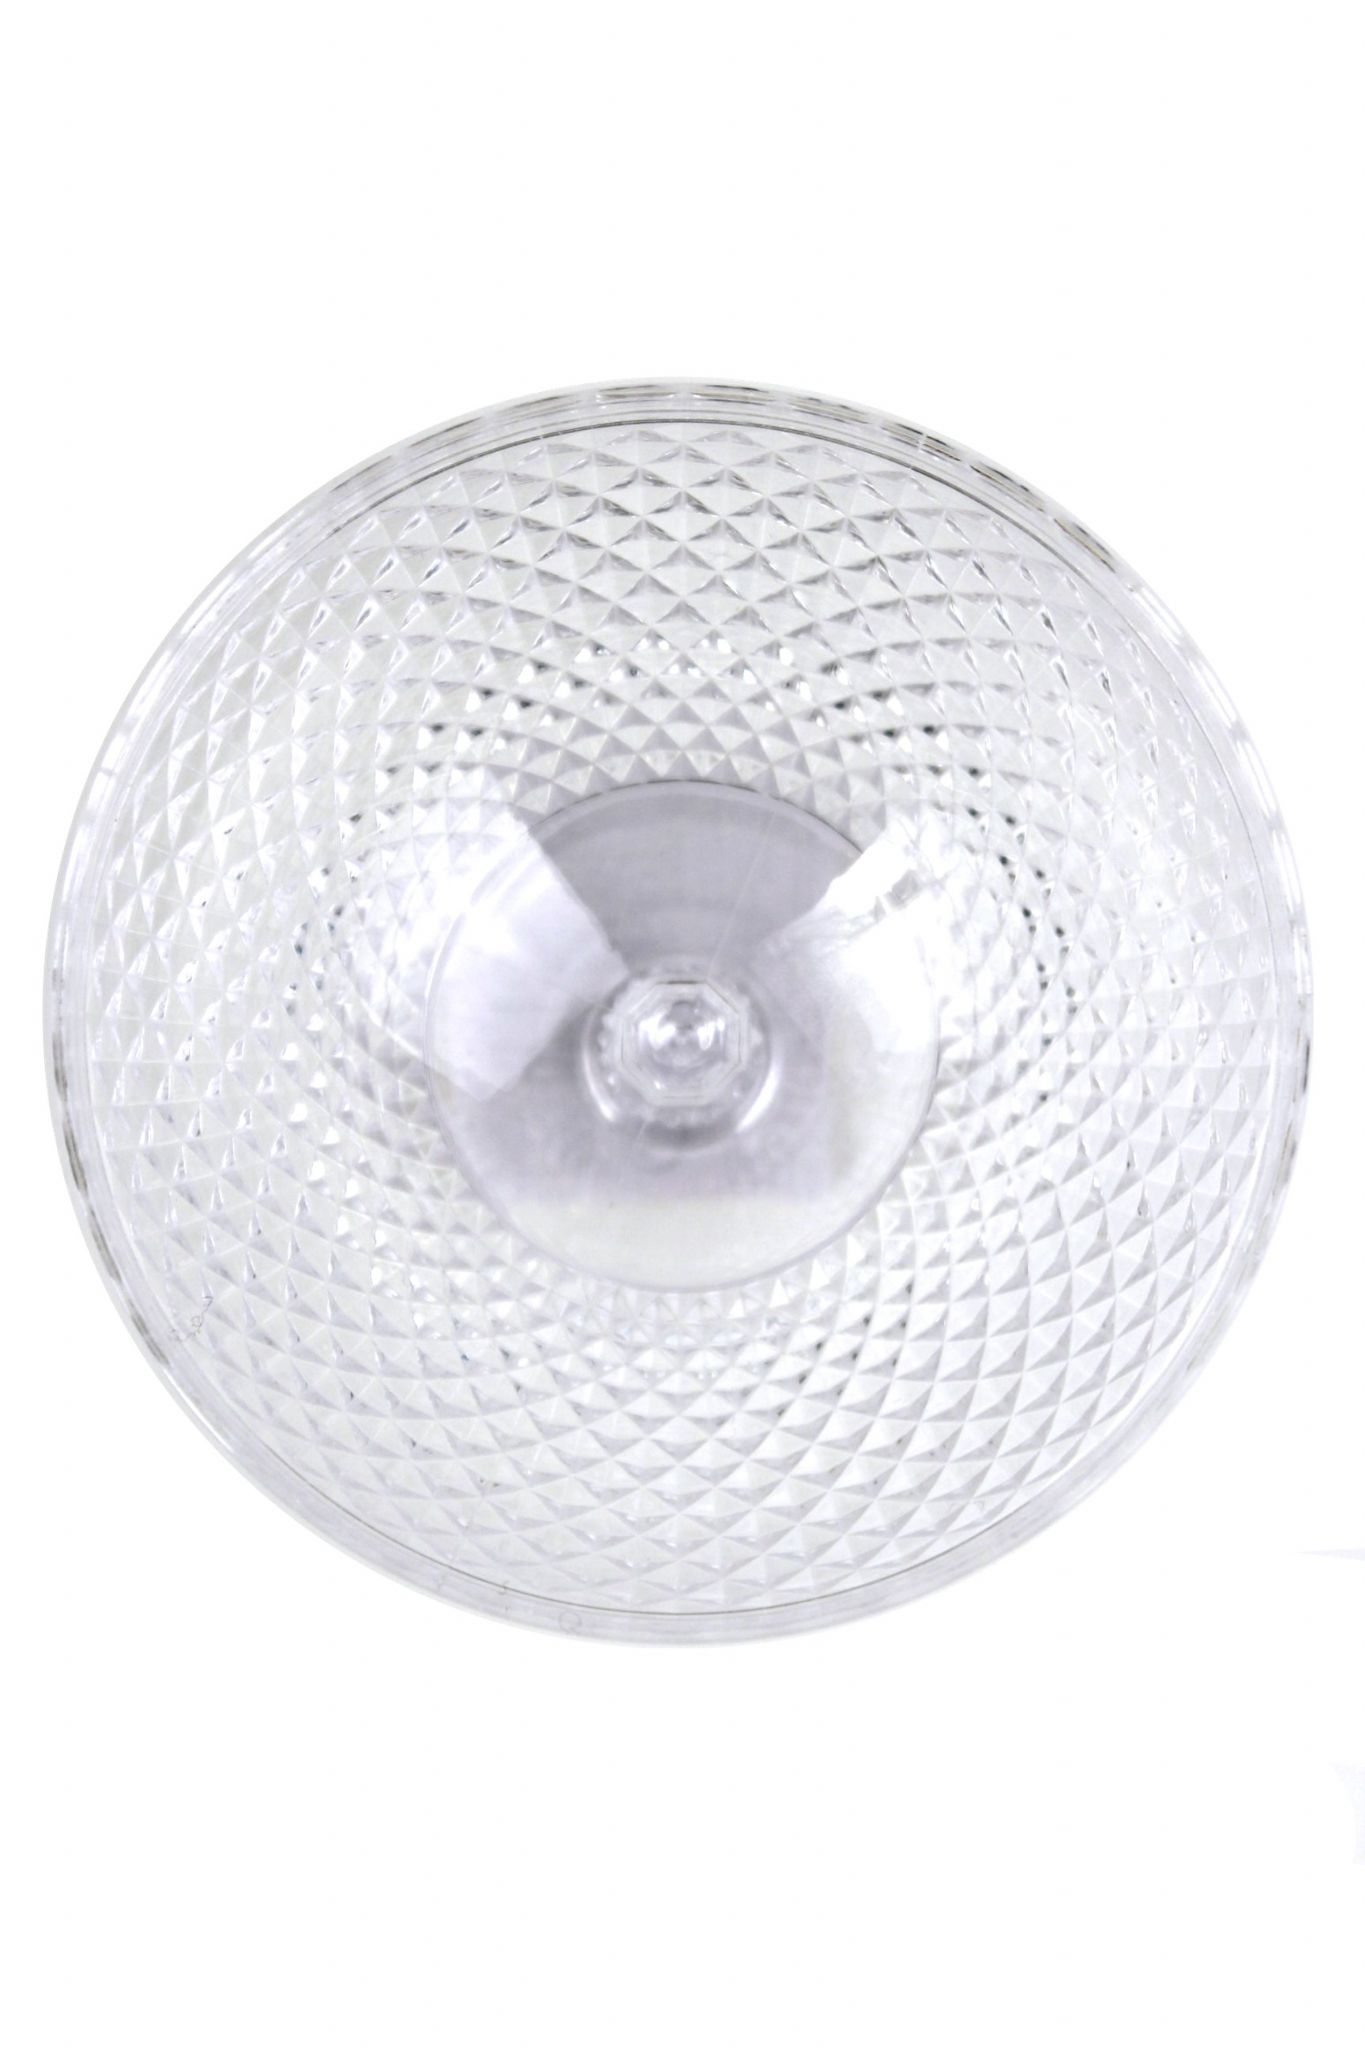 Crystal Effect Plastic Party Picnic Bowls Coloured Dessert